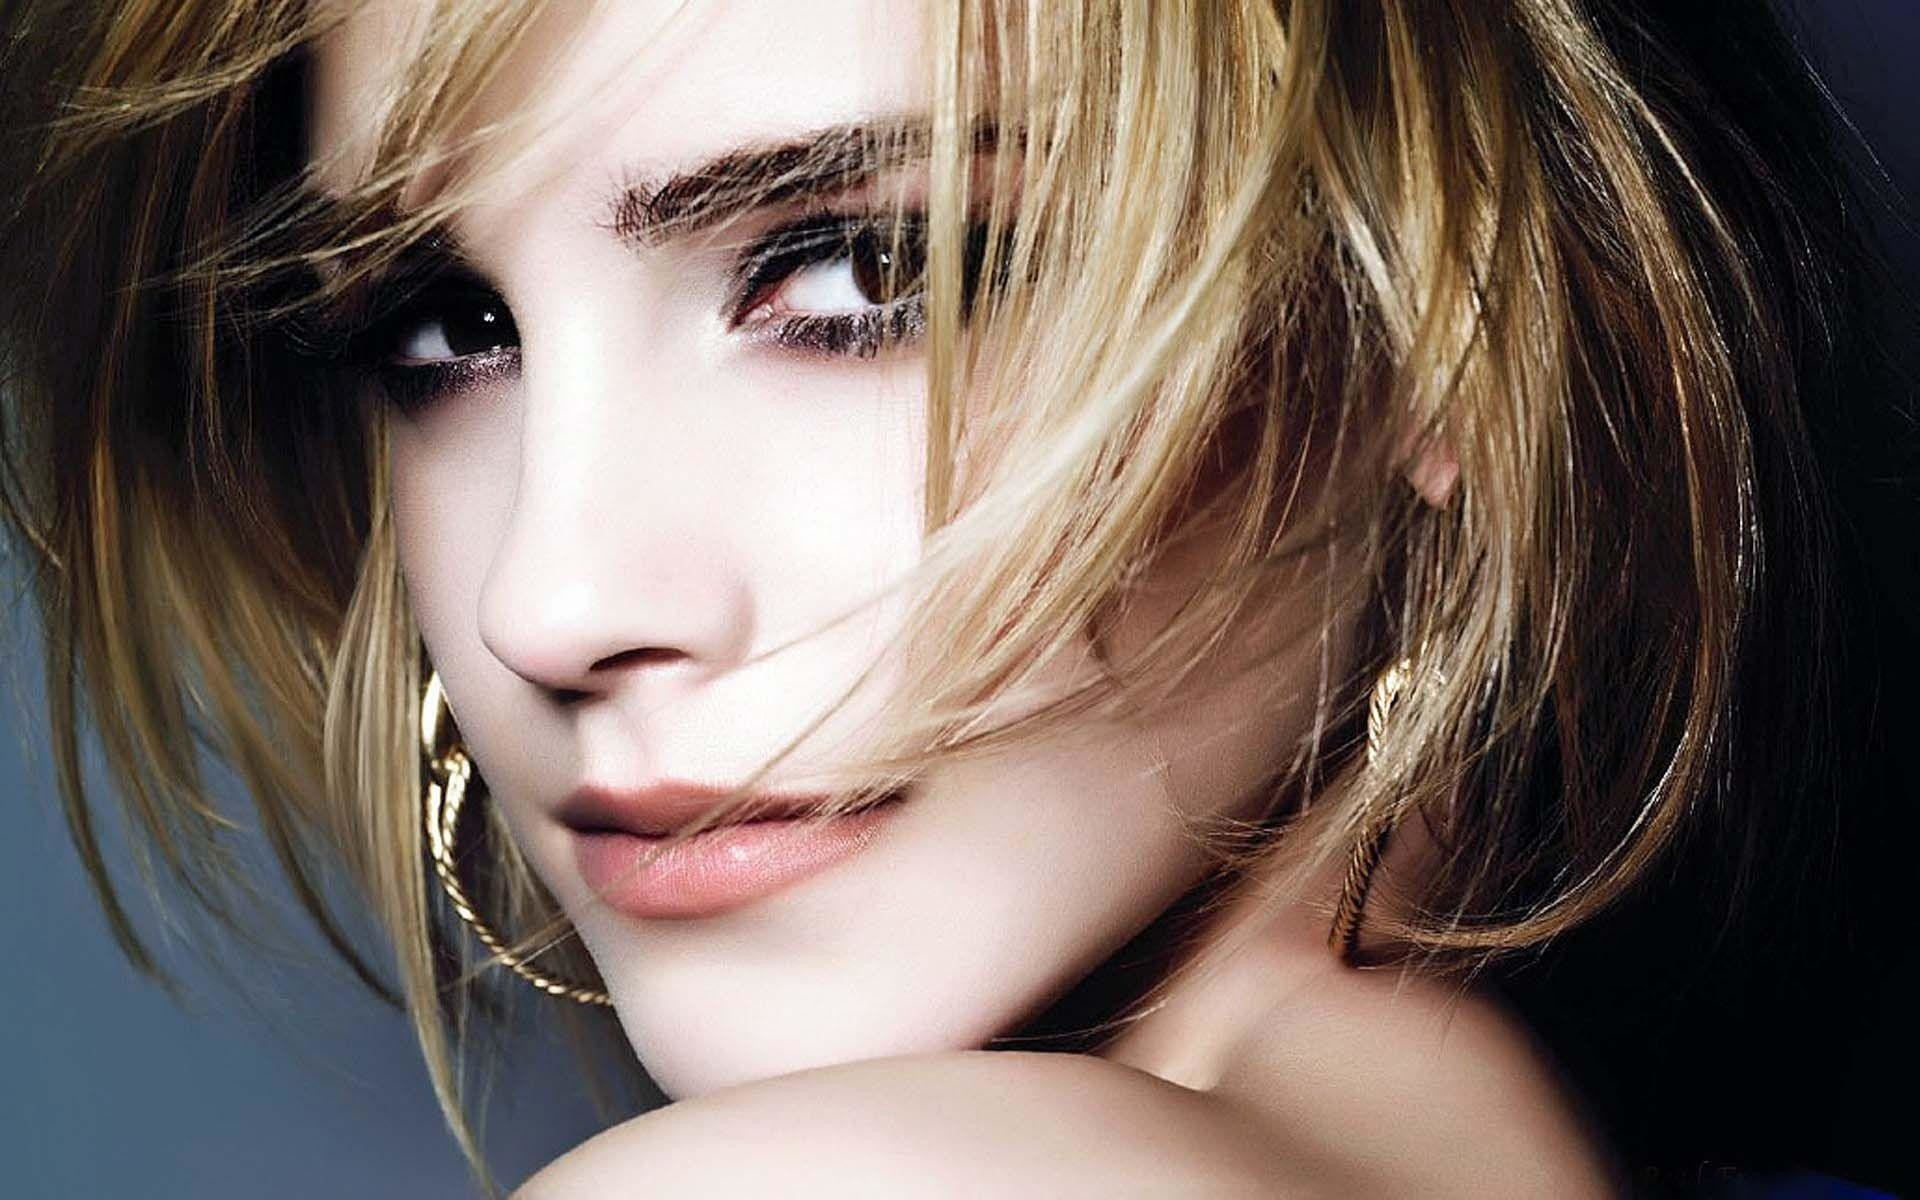 1920x1200 emma-watson-hd-wallpapers-21 emma watson Wallpaper HD free .